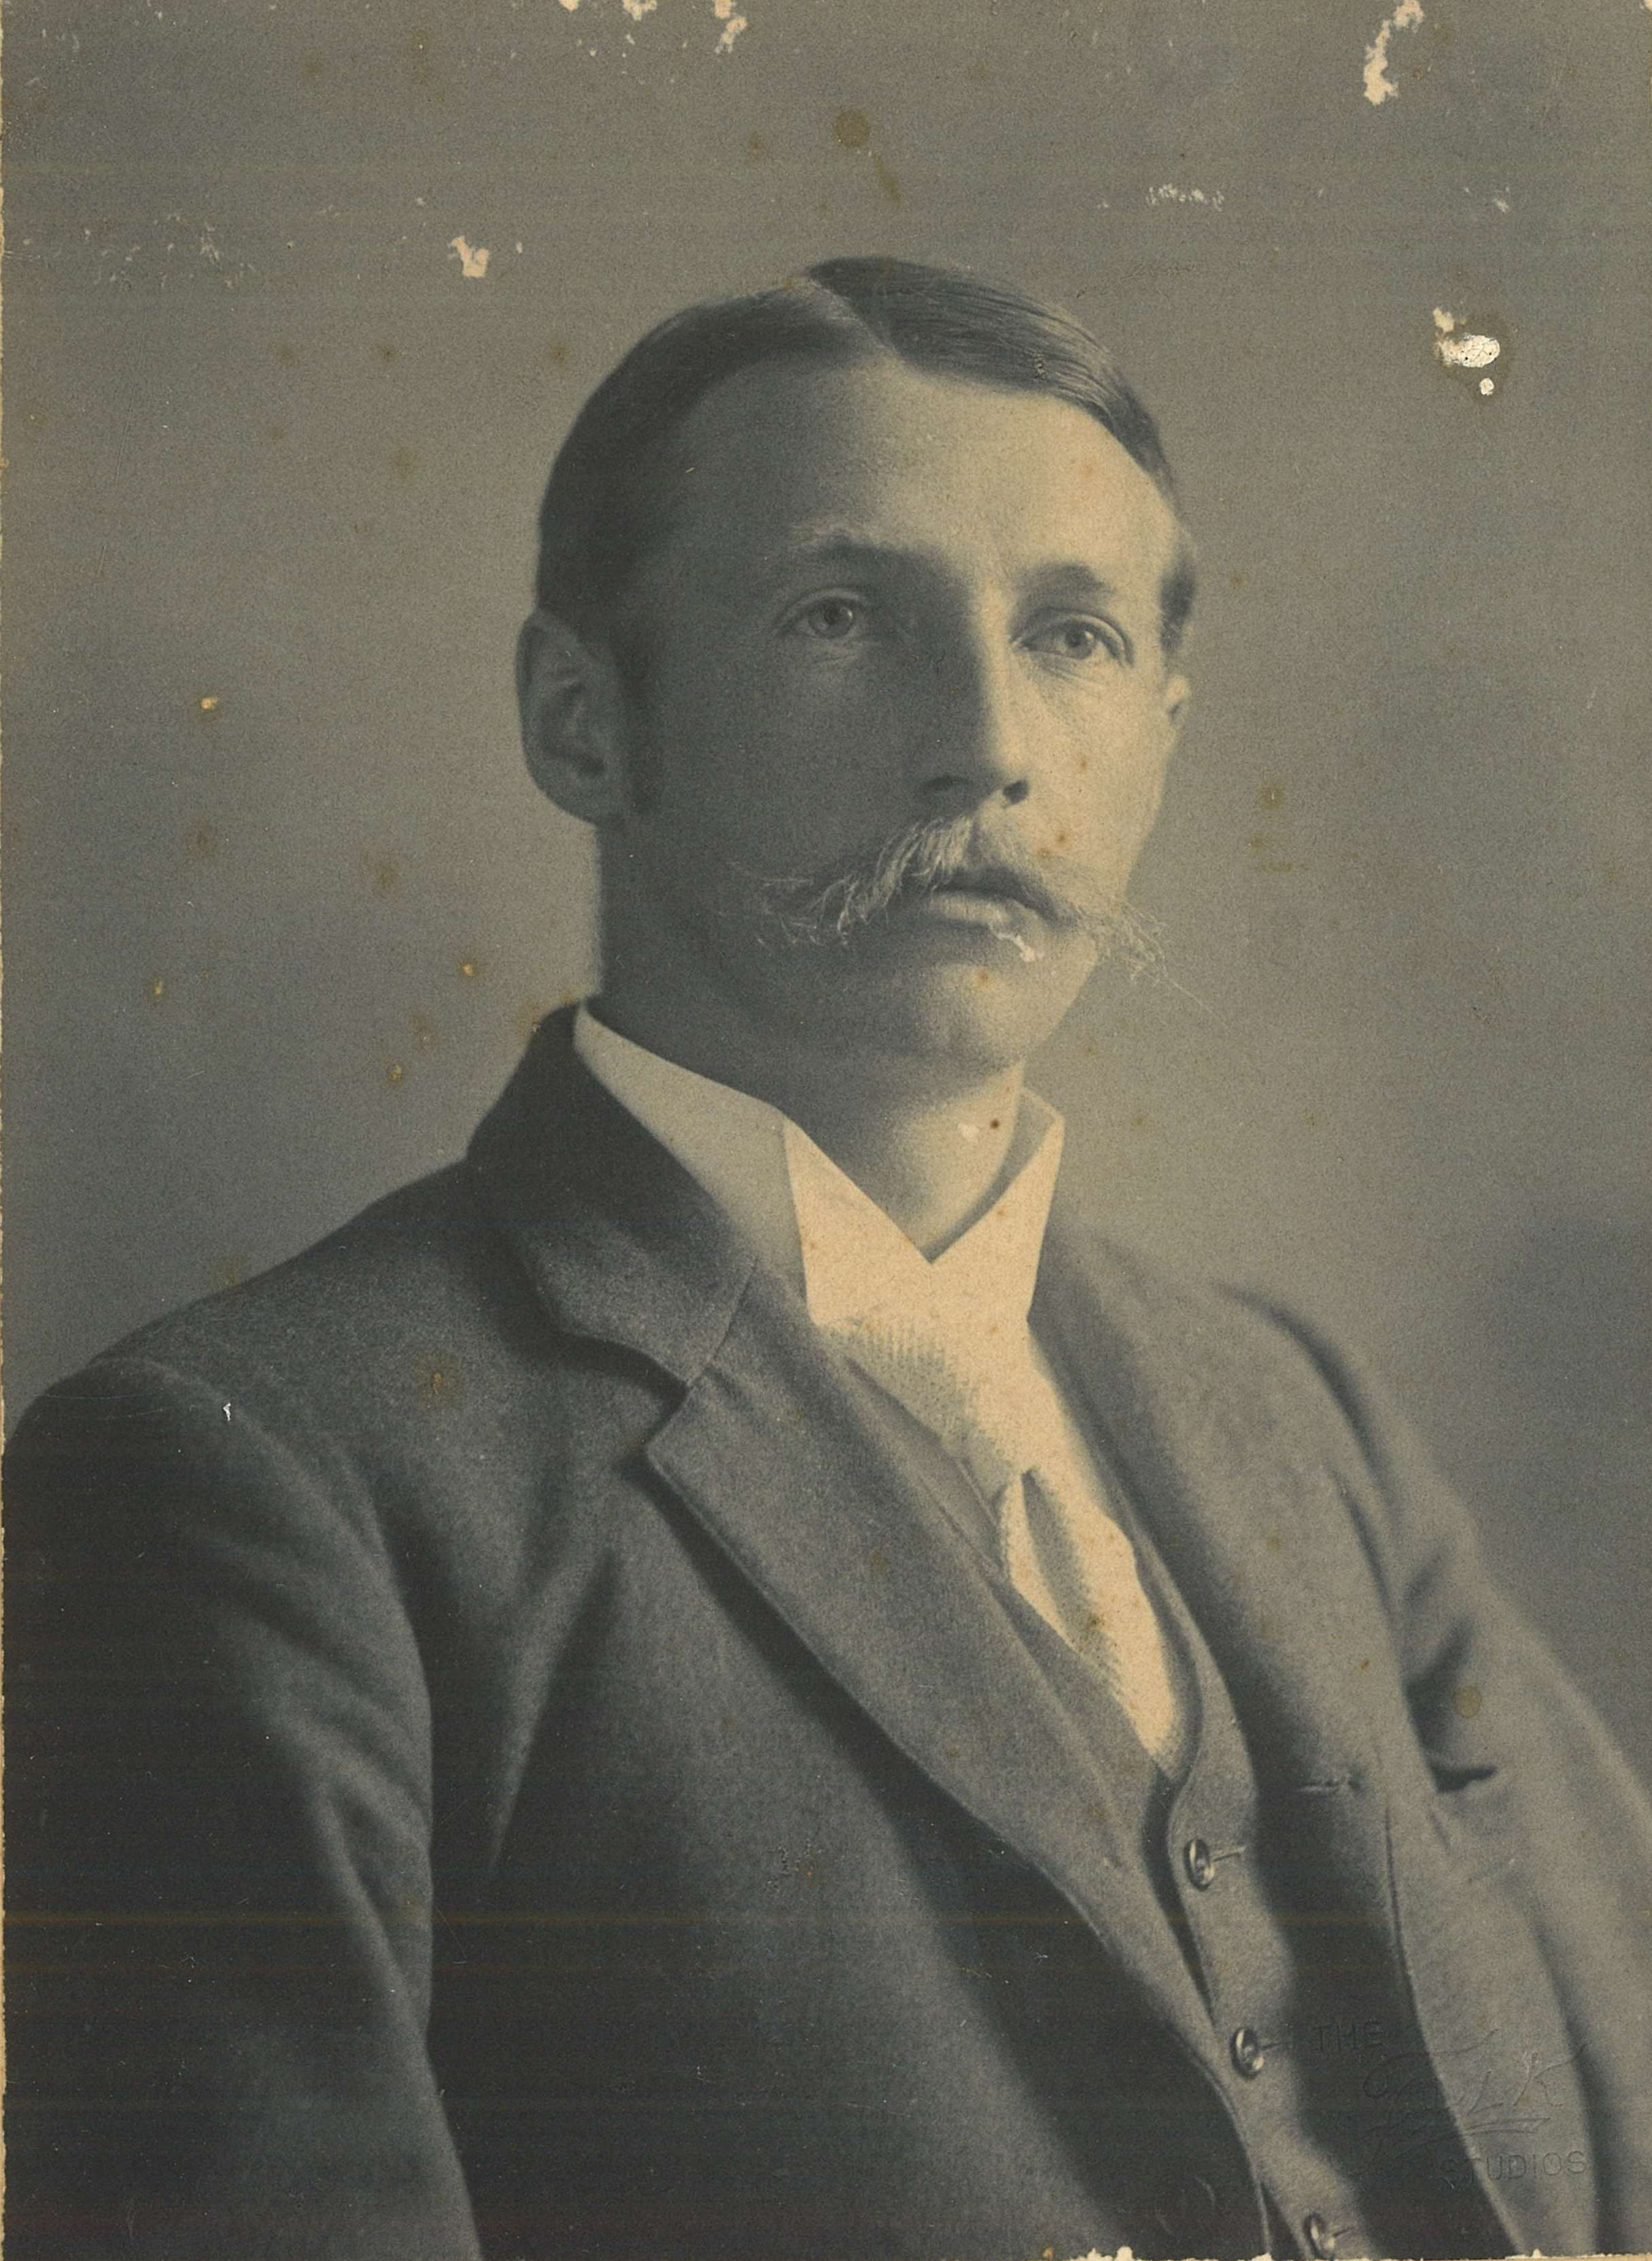 William Quinton Mason, around 1898 / Falk Studios